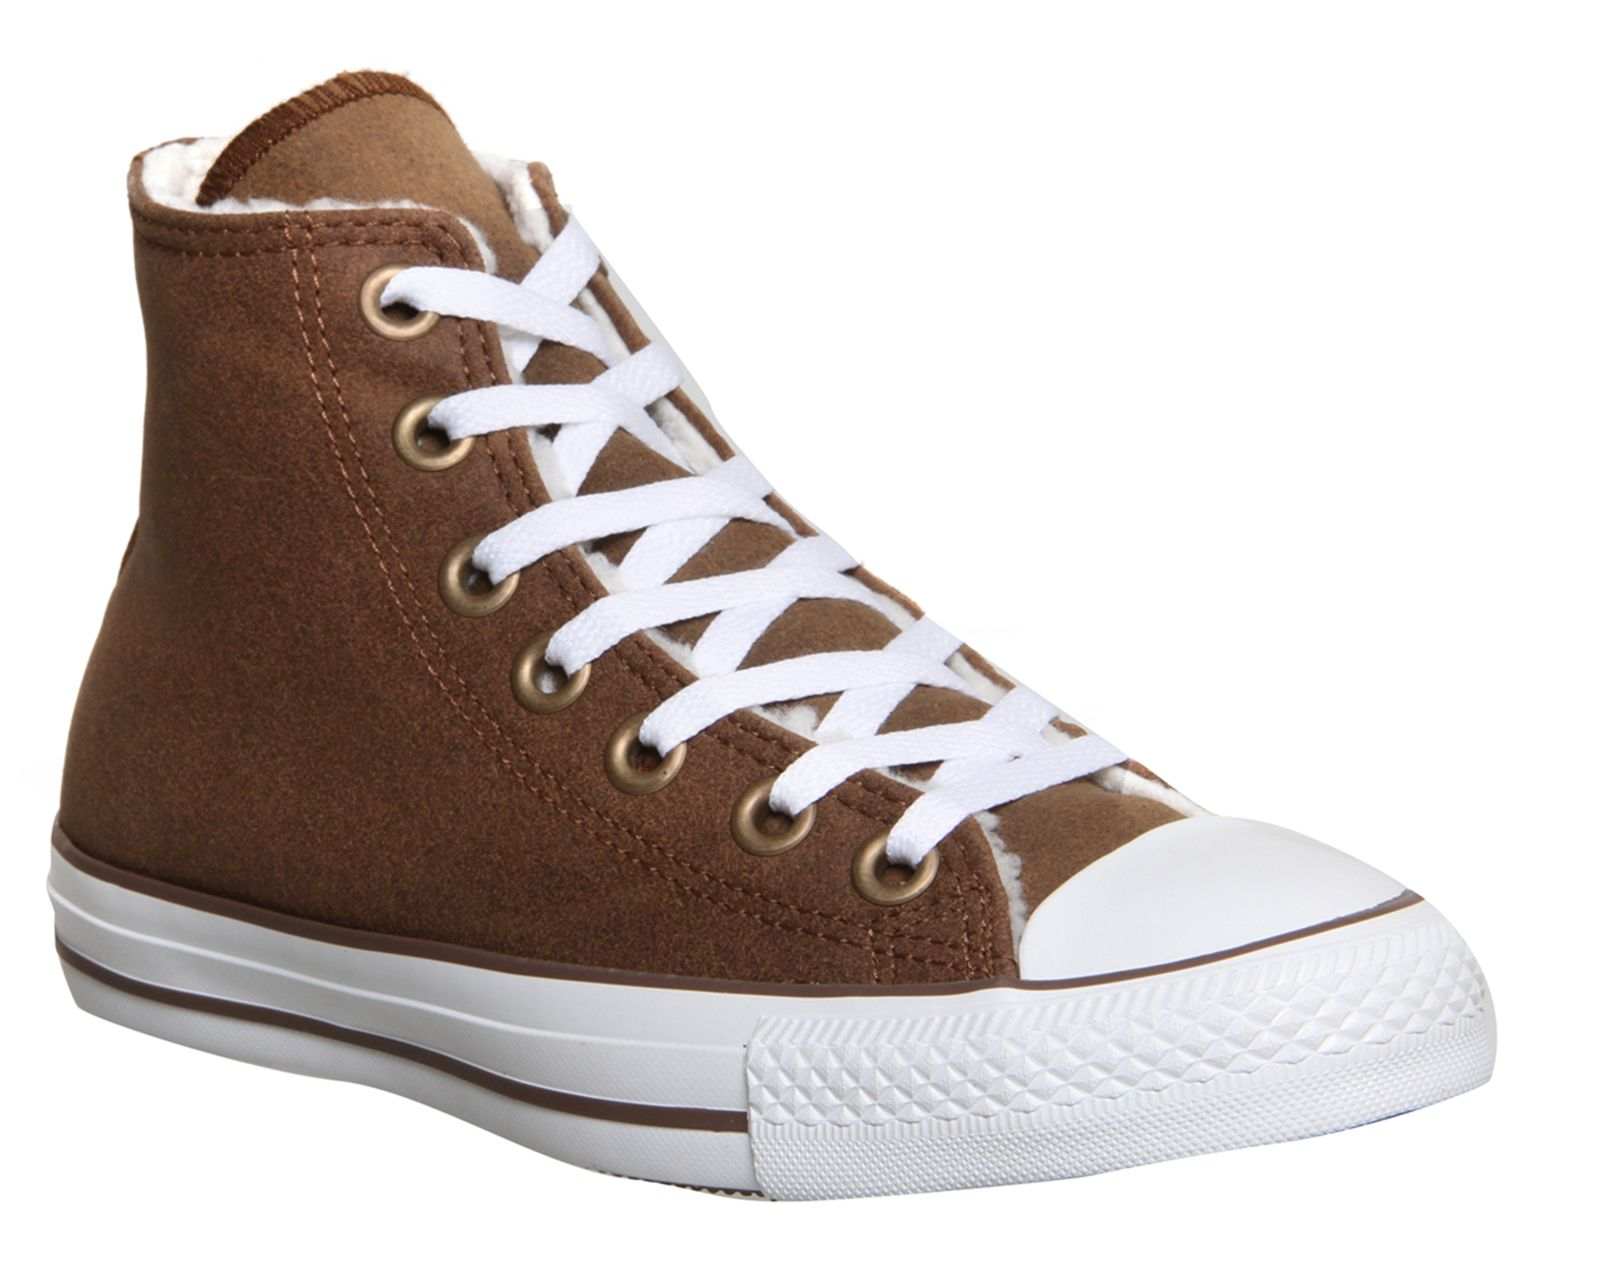 Converse All star hi trainer leather